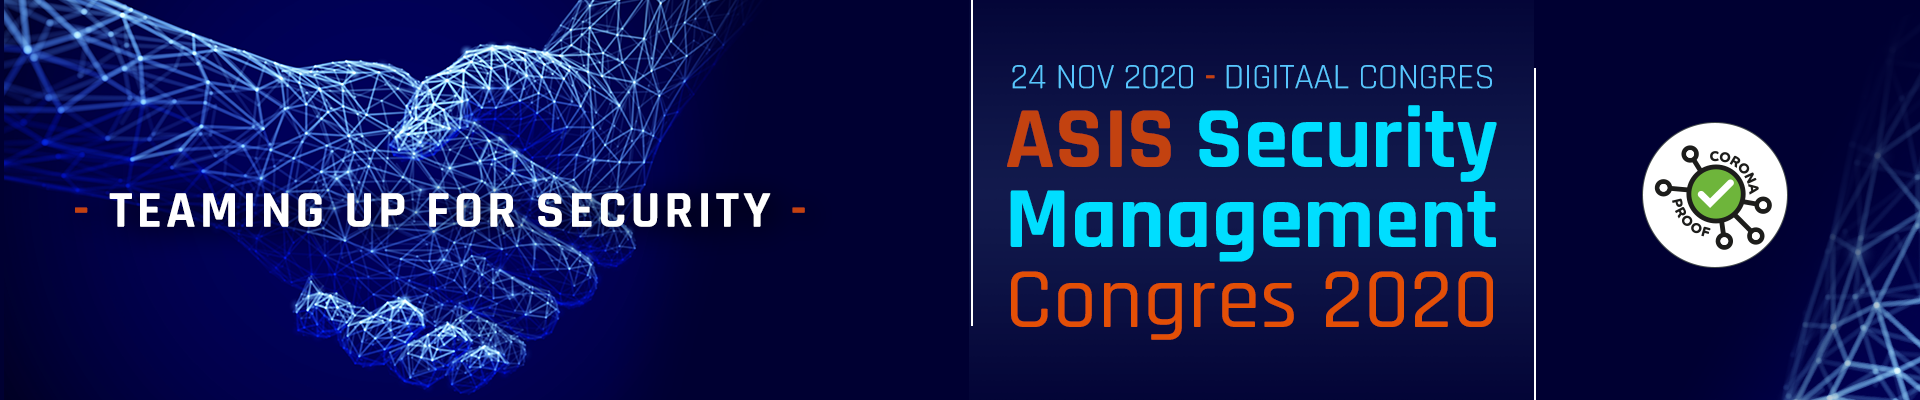 ASIS Security Management Congres 2020